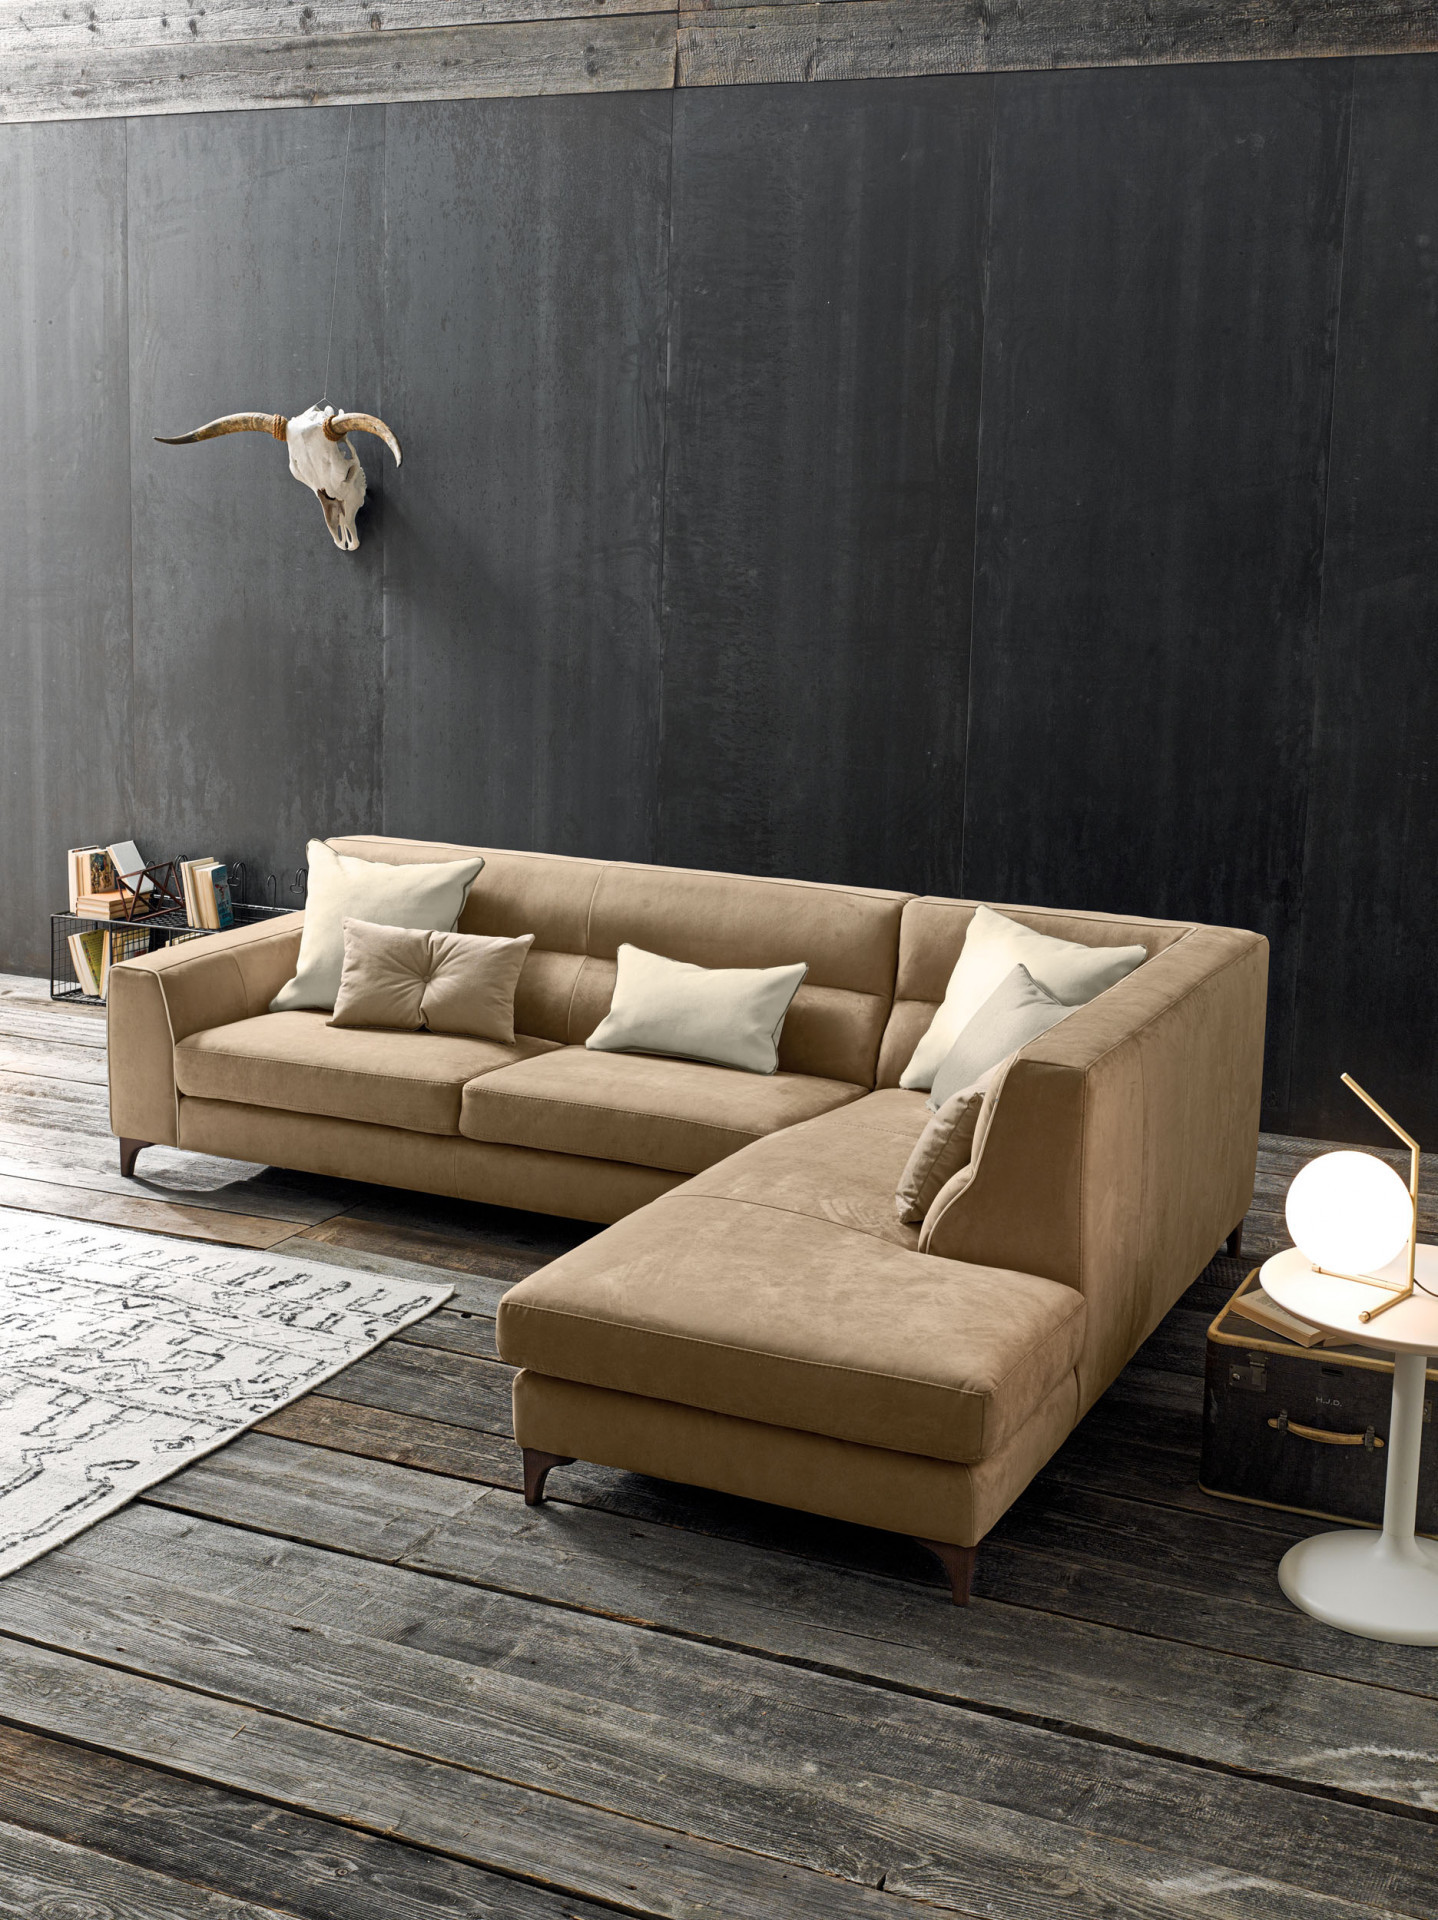 Sofas In Leather Sibilla LeComfort